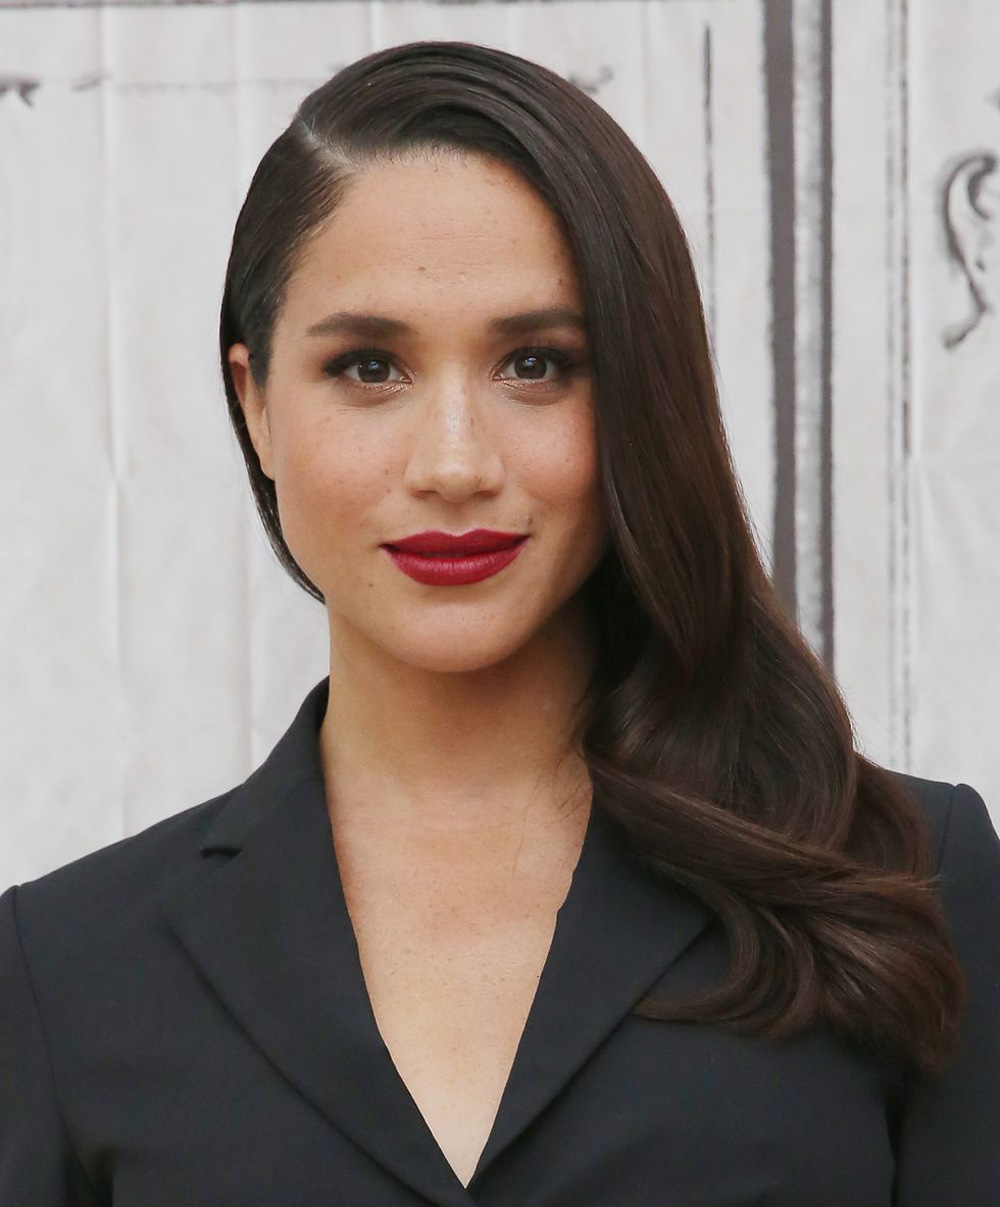 The Treatment Behind Meghan Markle's Ultra Sleek Hair